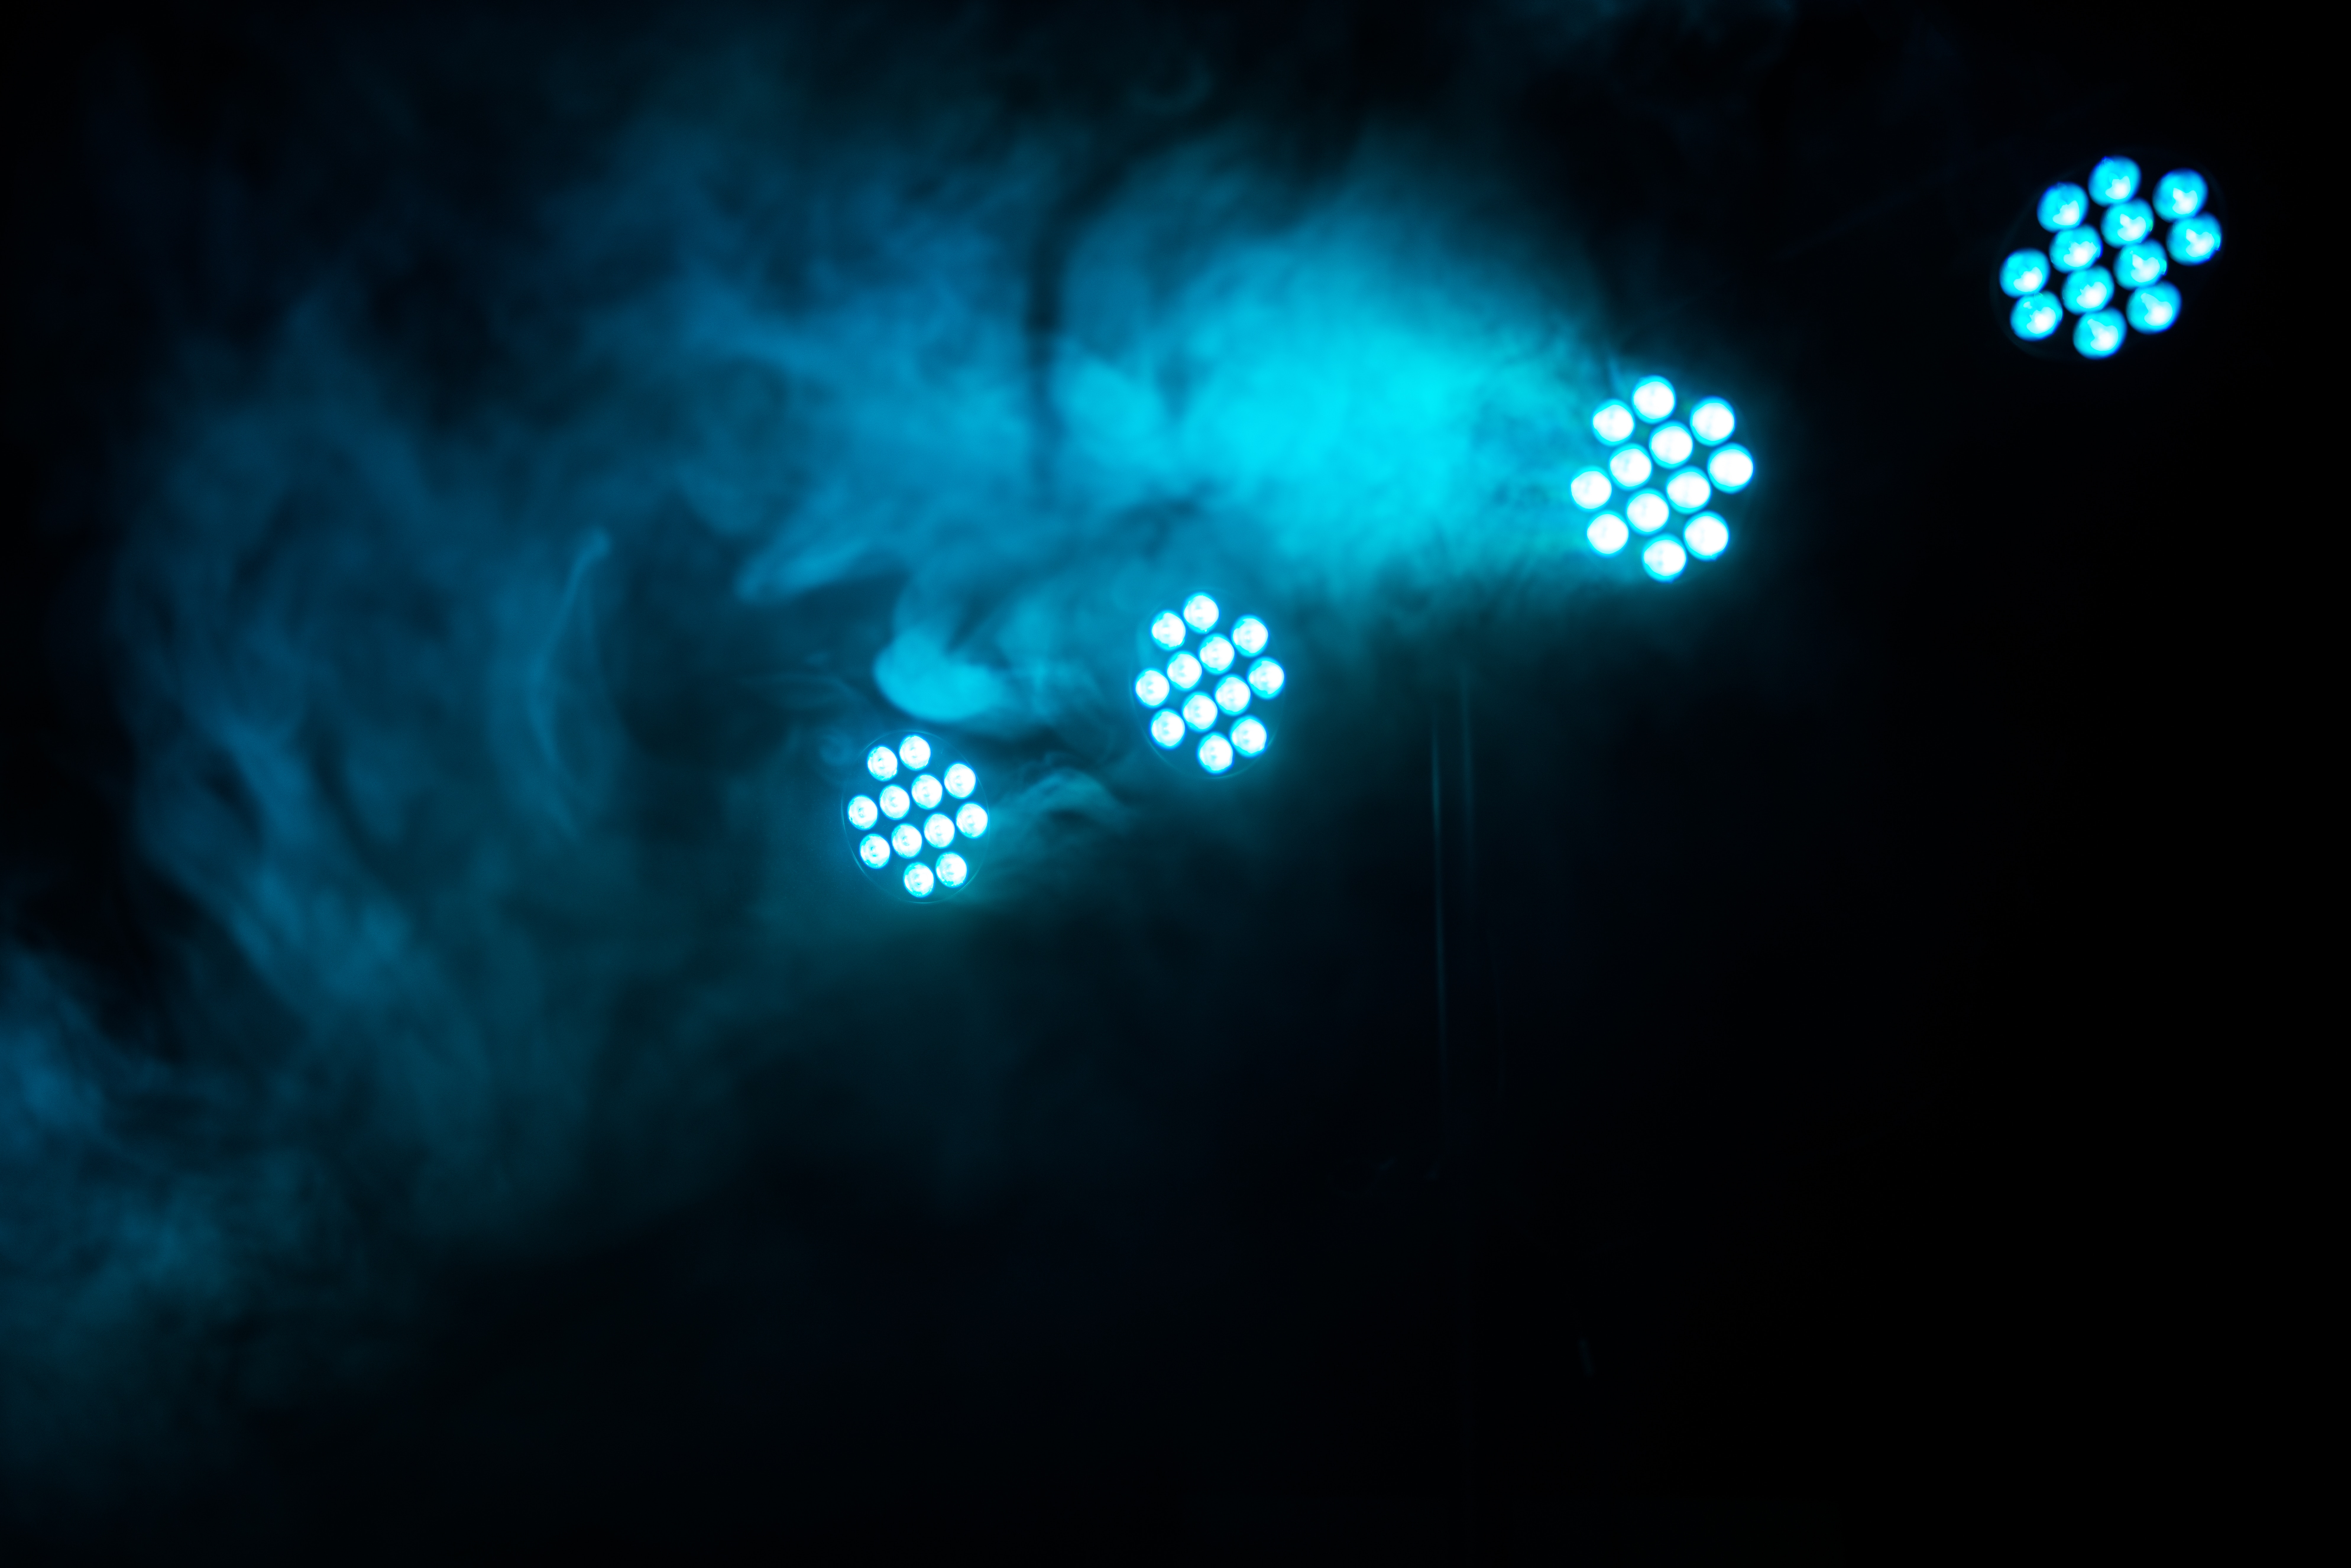 134049 download wallpaper Dark, Shine, Light, Smoke screensavers and pictures for free